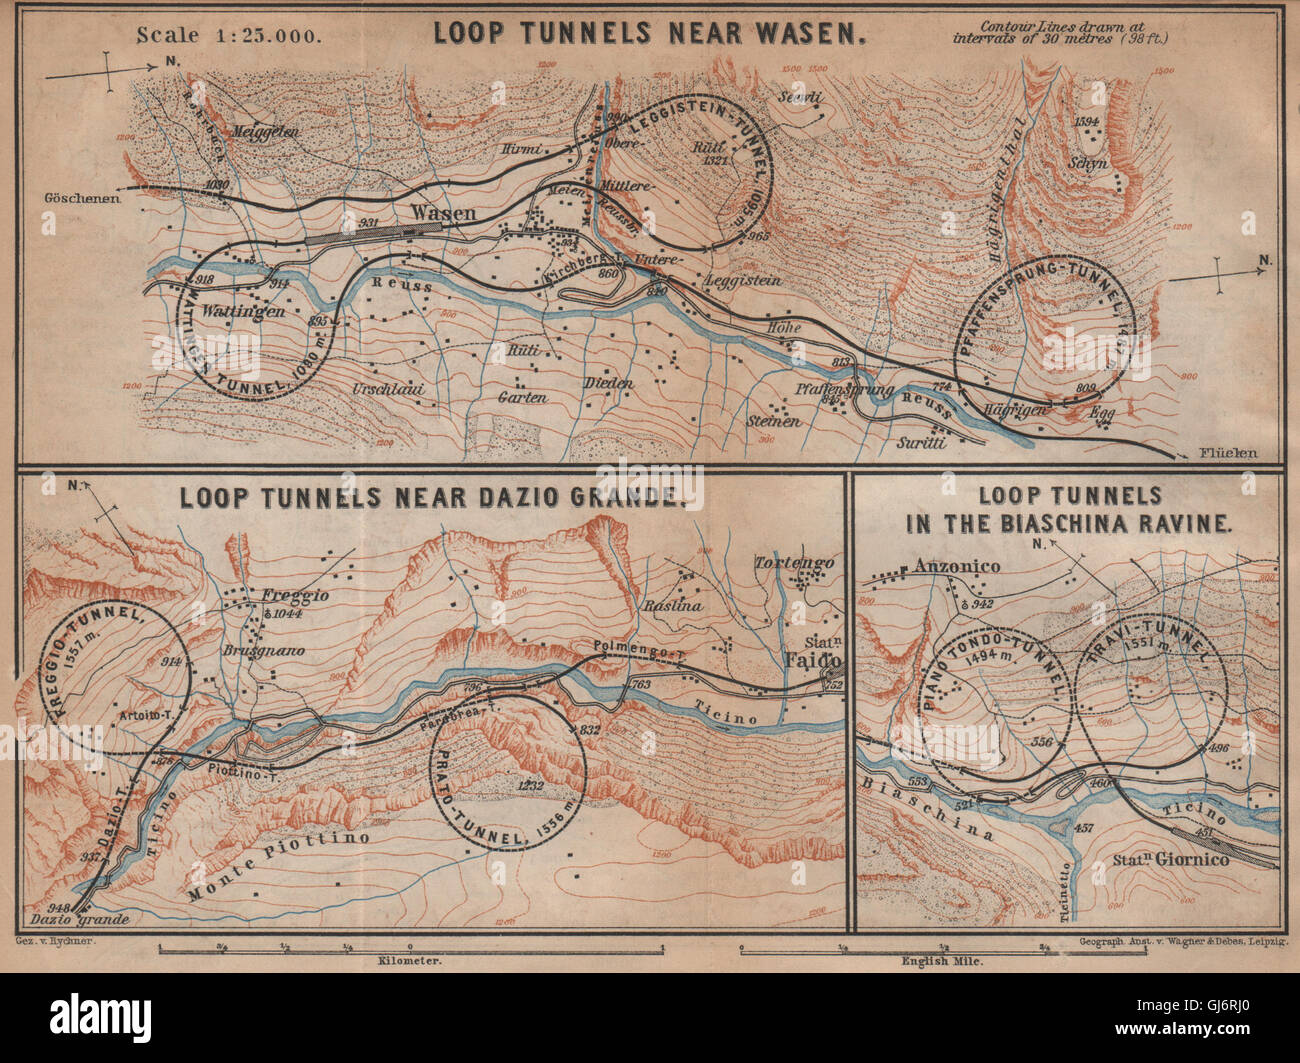 ST GOTTHARD RAILWAY SPIRAL/LOOP TUNNELS Wassen Freggio Prato Biaschina, 1901 map Stock Photo